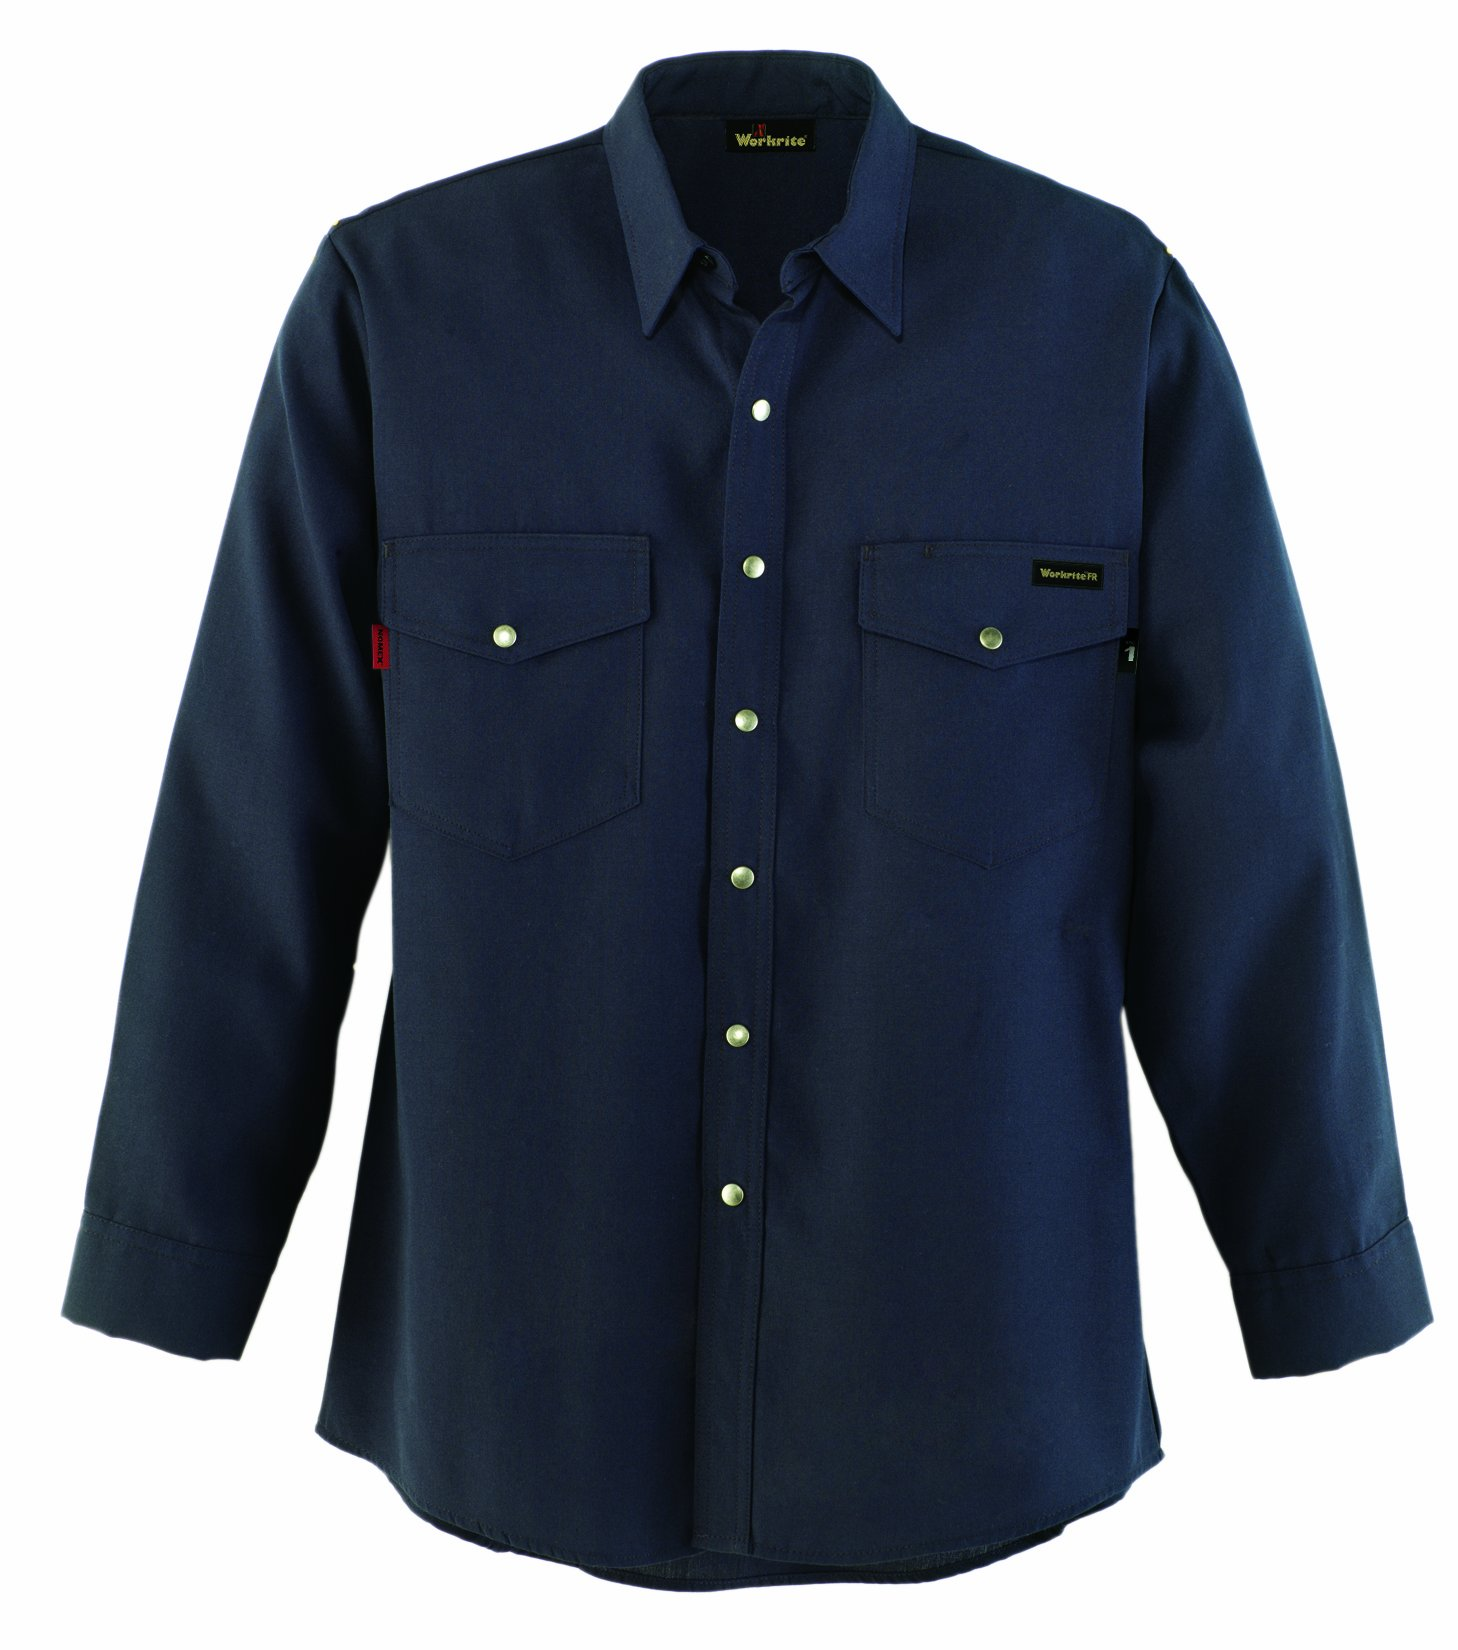 Workrite 220NX45NB44-0R Flame Resistant 4.5 oz Nomex IIIA Long Sleeve Western-Style Shirt, Snap Cuff, 44 Chest Size, Regular Length, Navy Blue